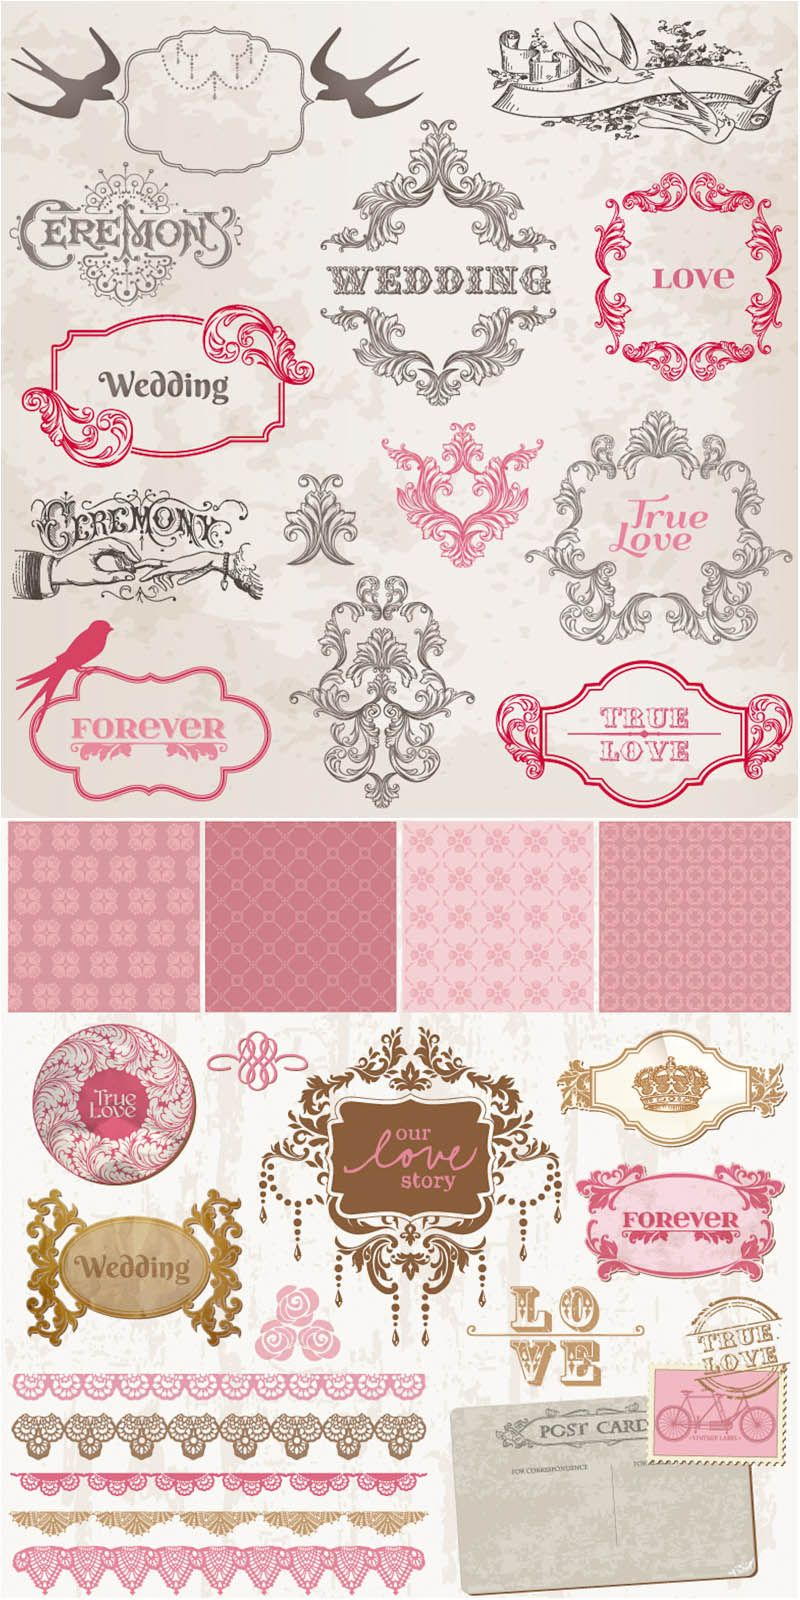 My favorite place to snitch eps art for invitations hobbies set of vector vintage decorative wedding frames patterns badges and wedding embellishment elements for your invitation cards decorations etc stopboris Image collections